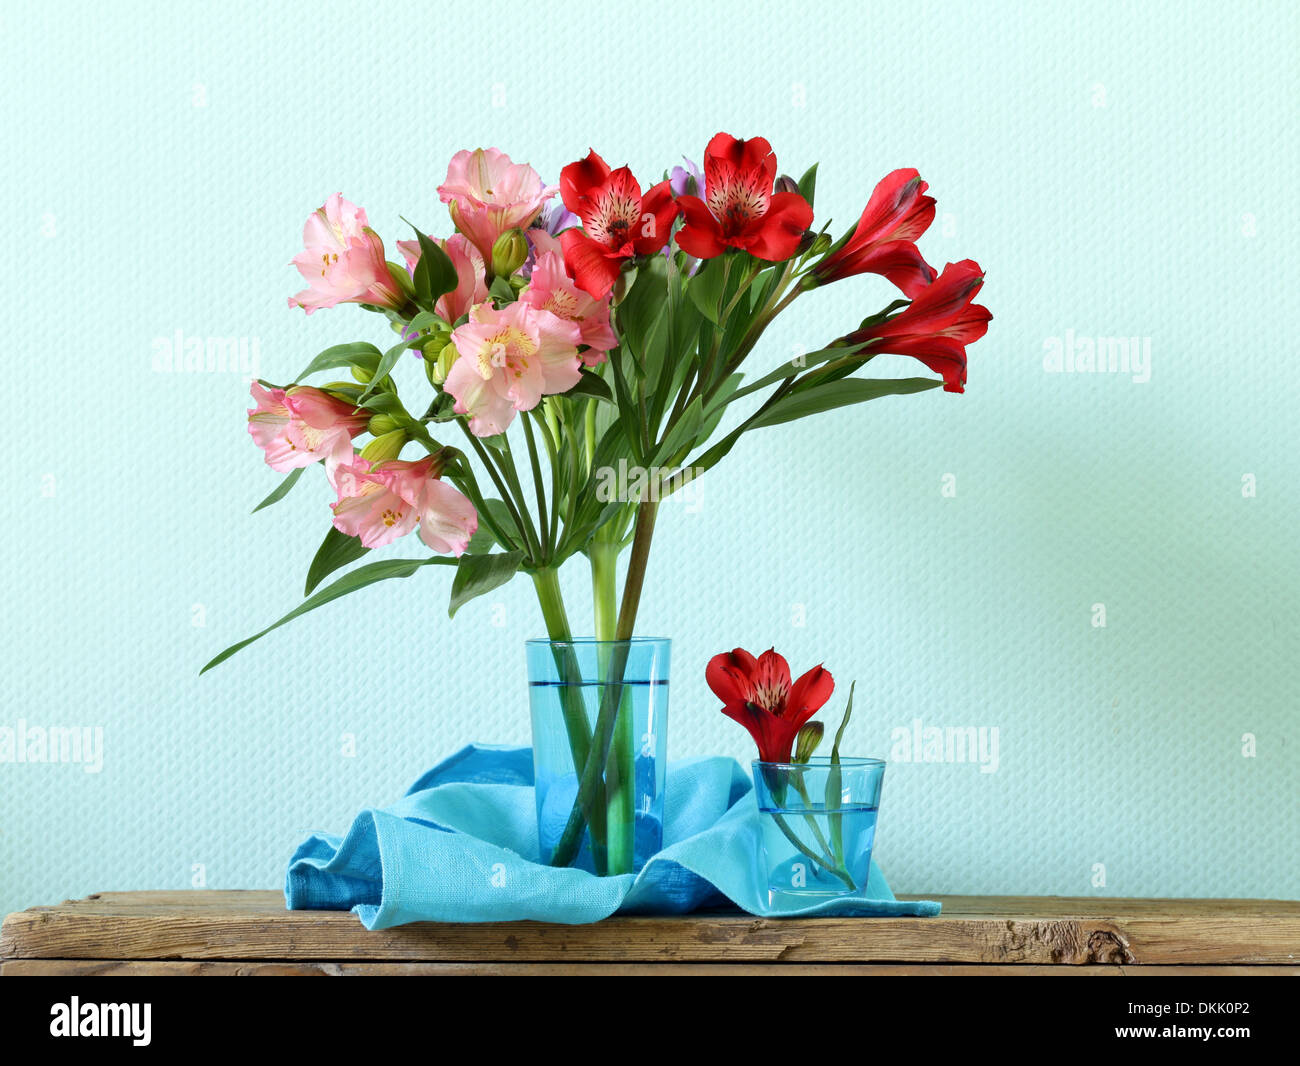 bouquet of flowers orchid family (Alstroemeria) beautiful and colorful - Stock Image